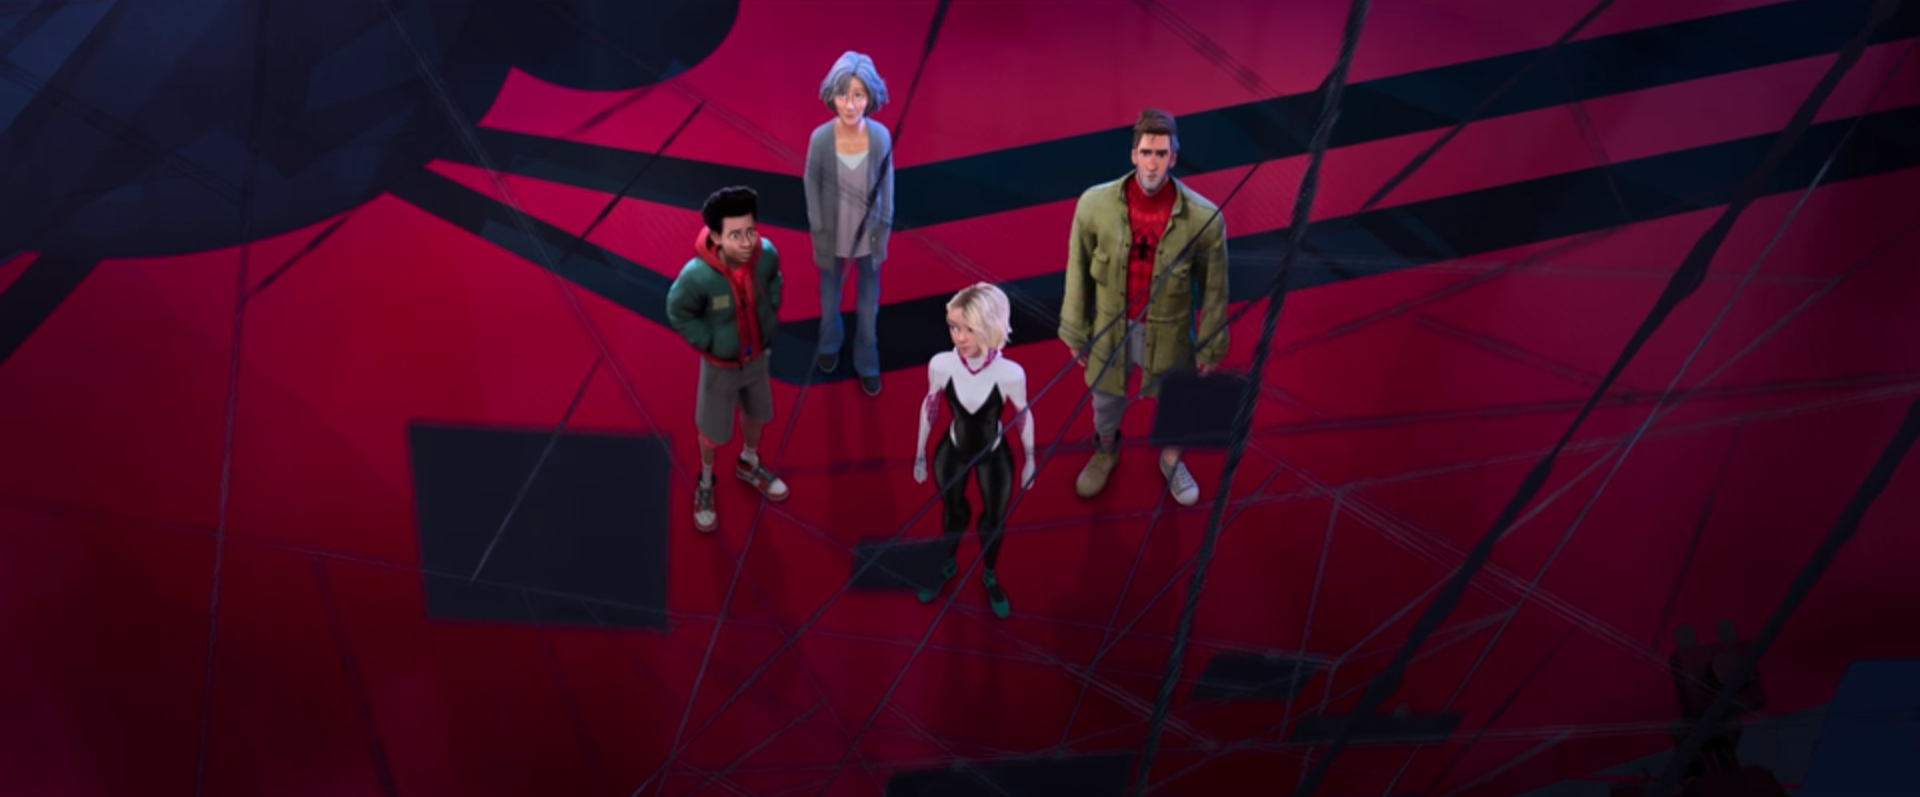 Spider-Man: Into the Spider-Verse  (dirs. Bob Persichetti, Peter Ramsey, and Rodney Rothman, 2018)